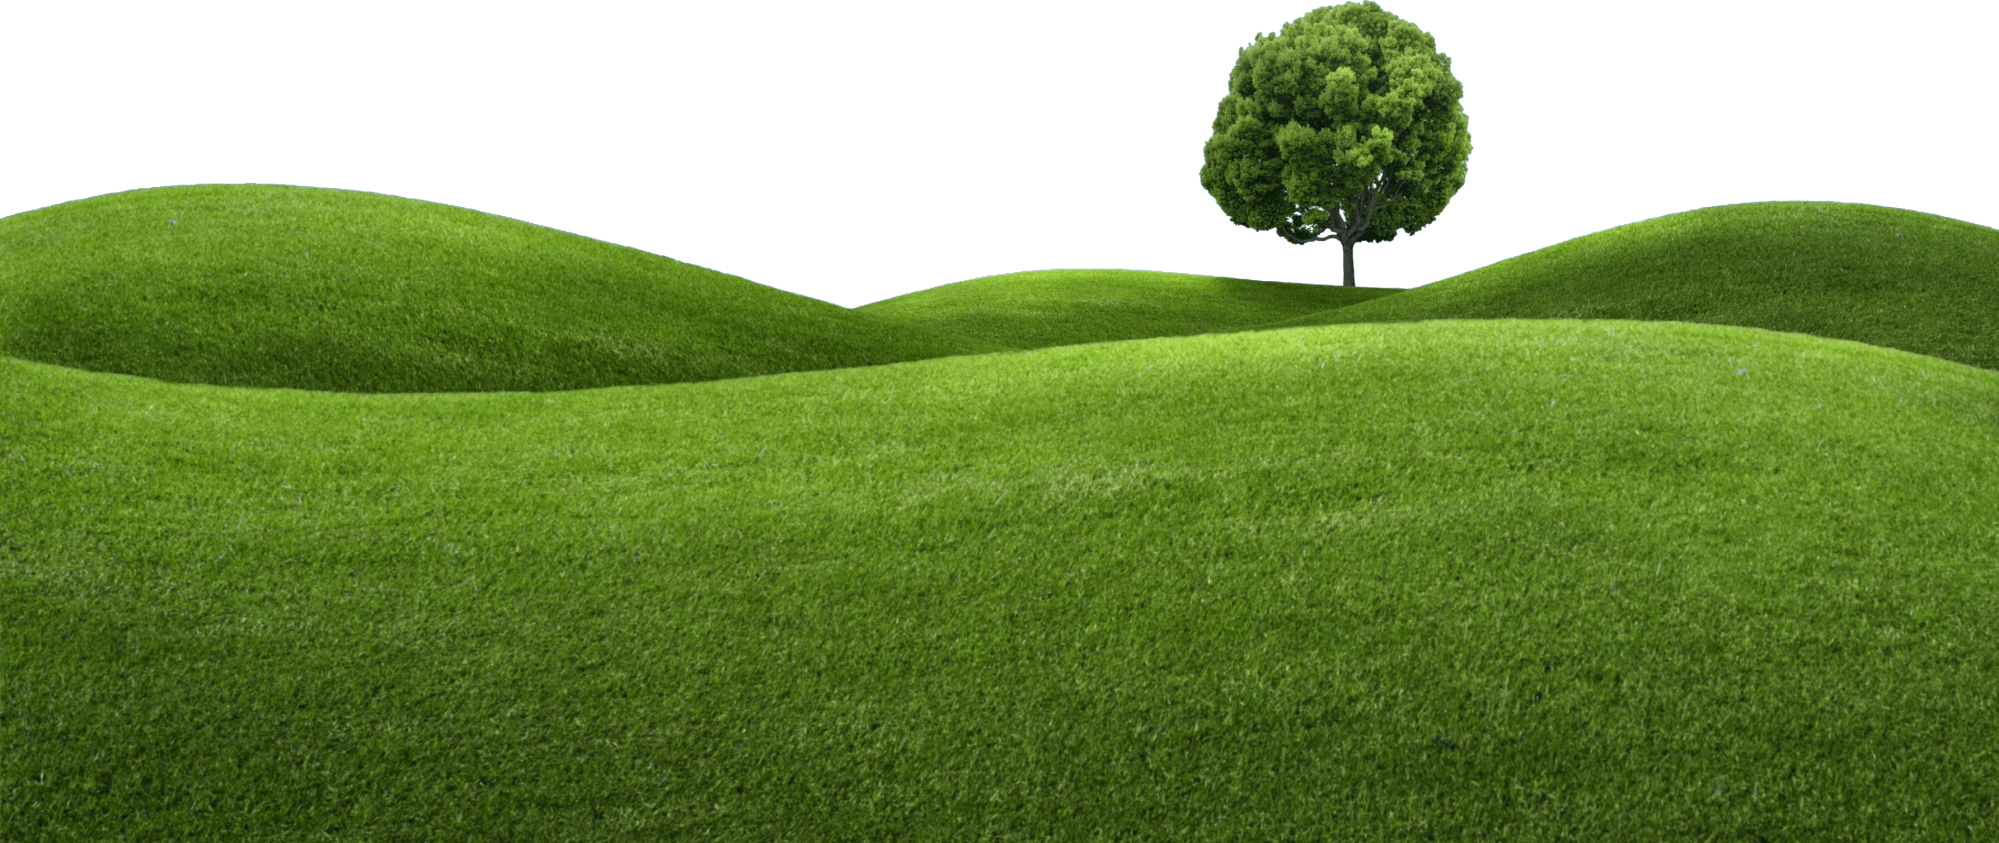 Grass wallpapers xq picture. Hills clipart lawn